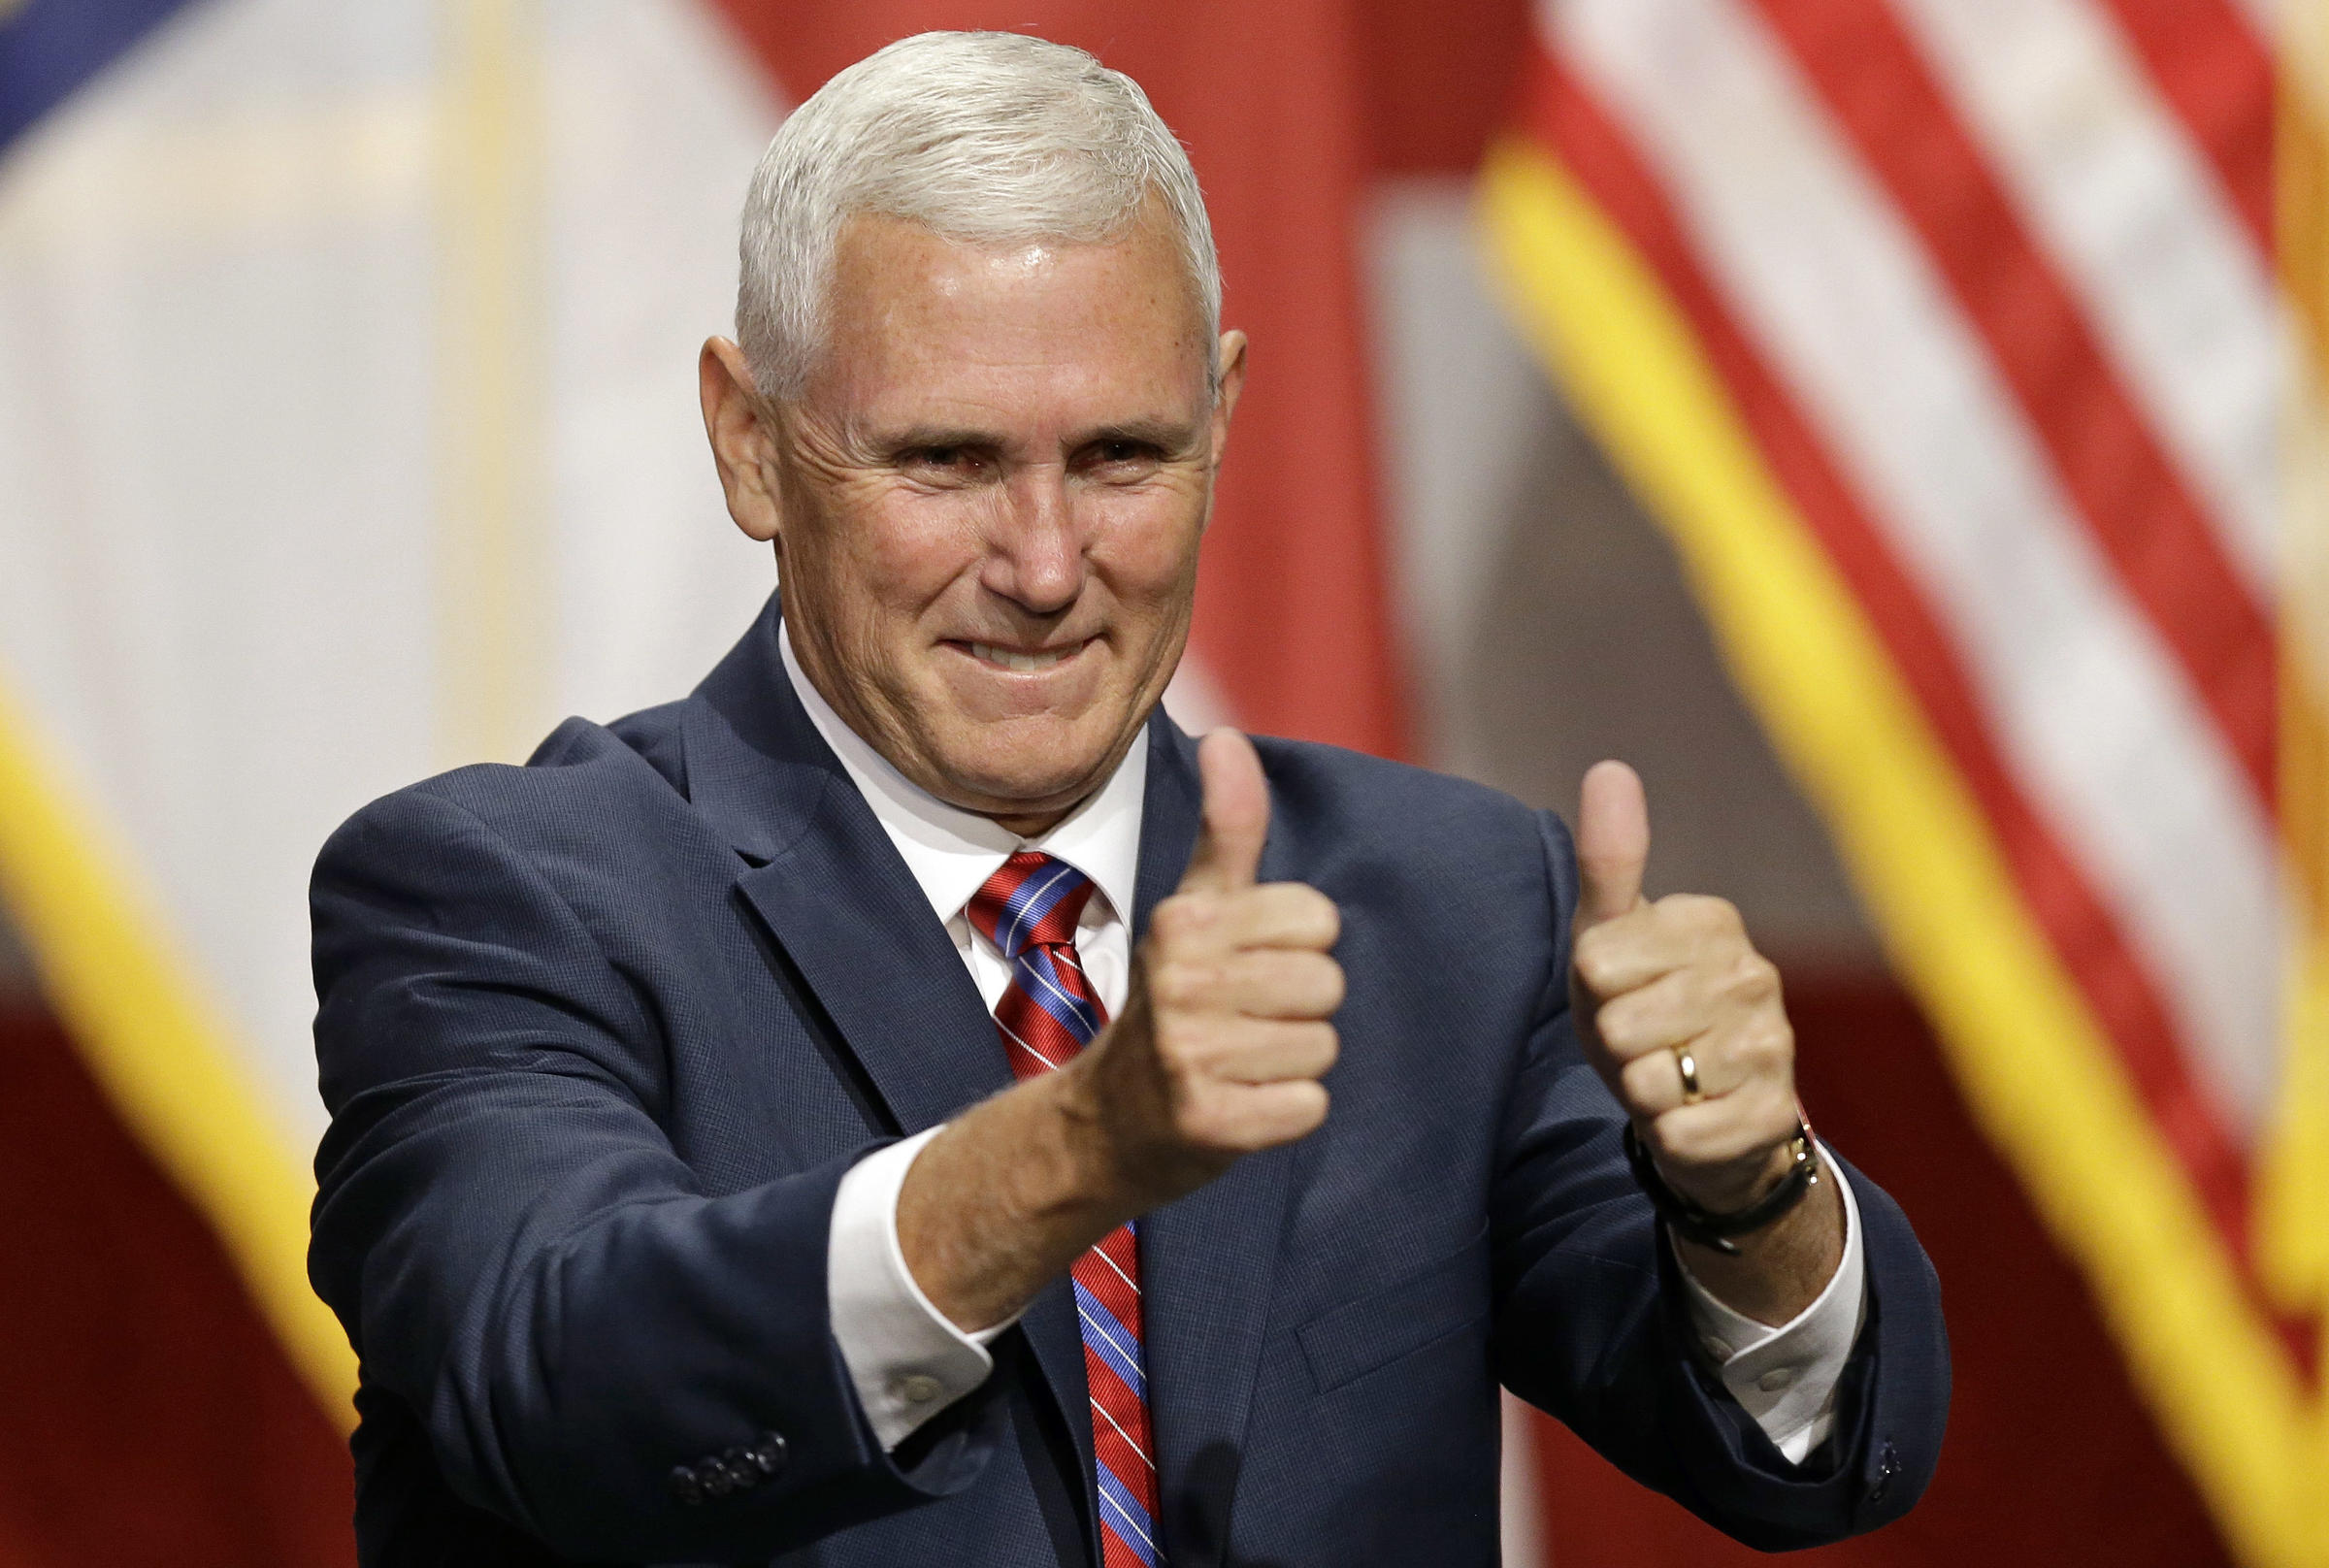 gop vp nominee mike pence at two pa events tuesday 90 5 wesa